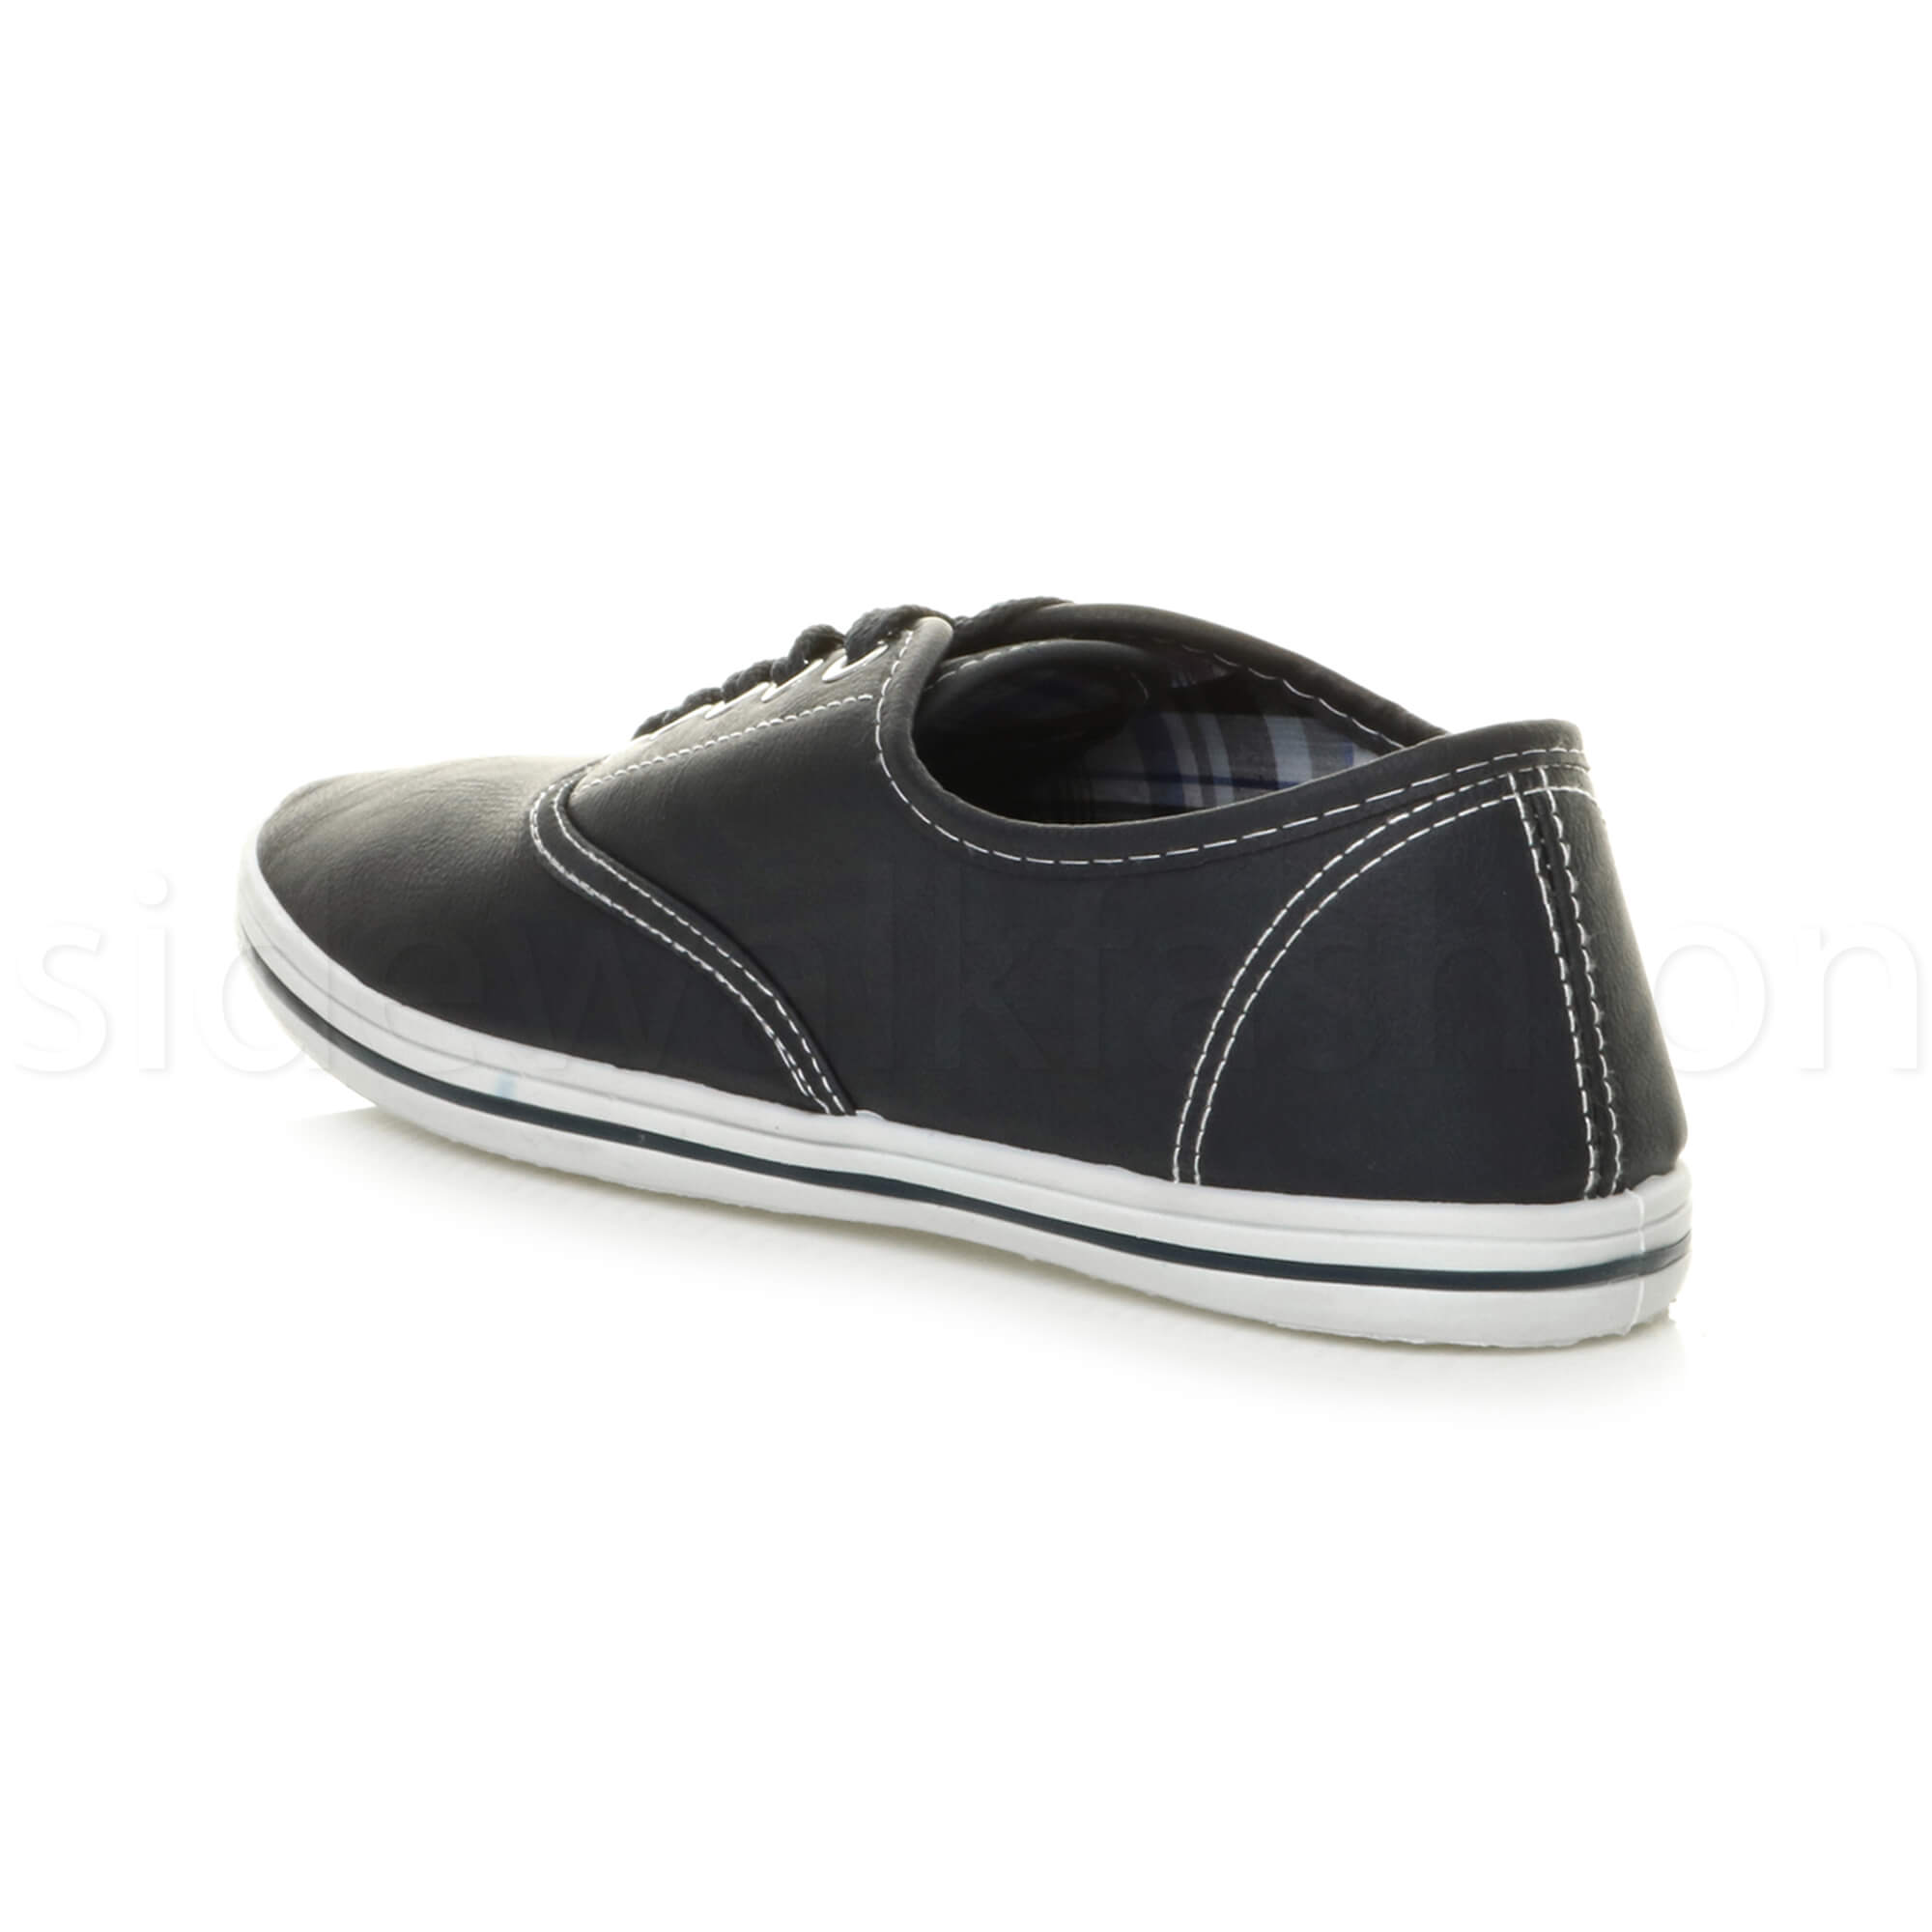 Mens-flat-lace-up-work-smart-plain-casual-pump-plimsoles-trainers-shoes-size thumbnail 12